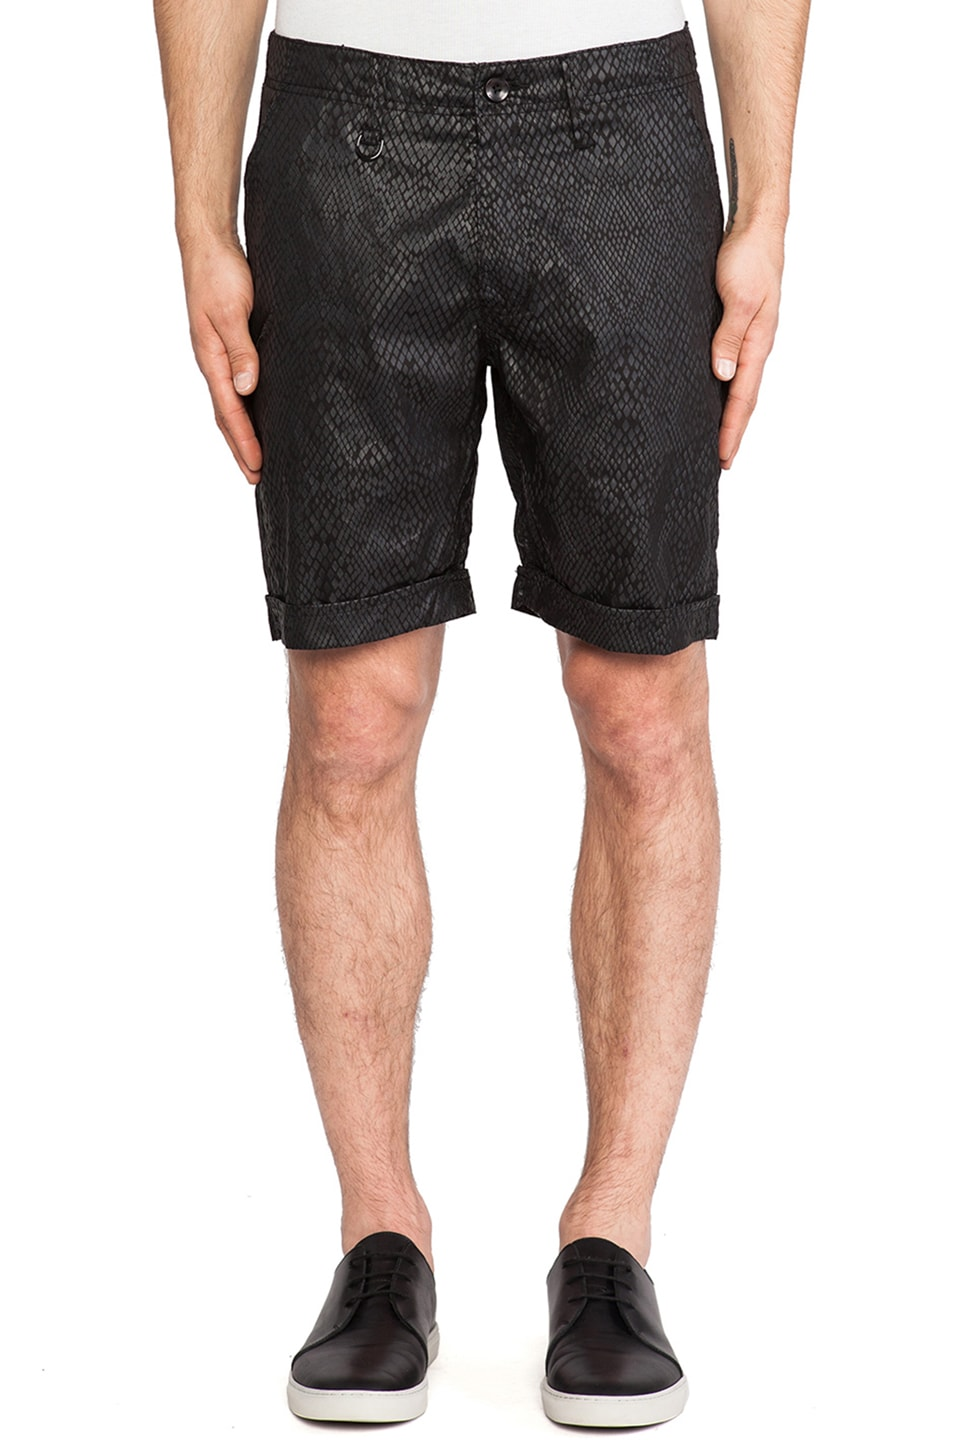 Publish Spokane Shorts in Black